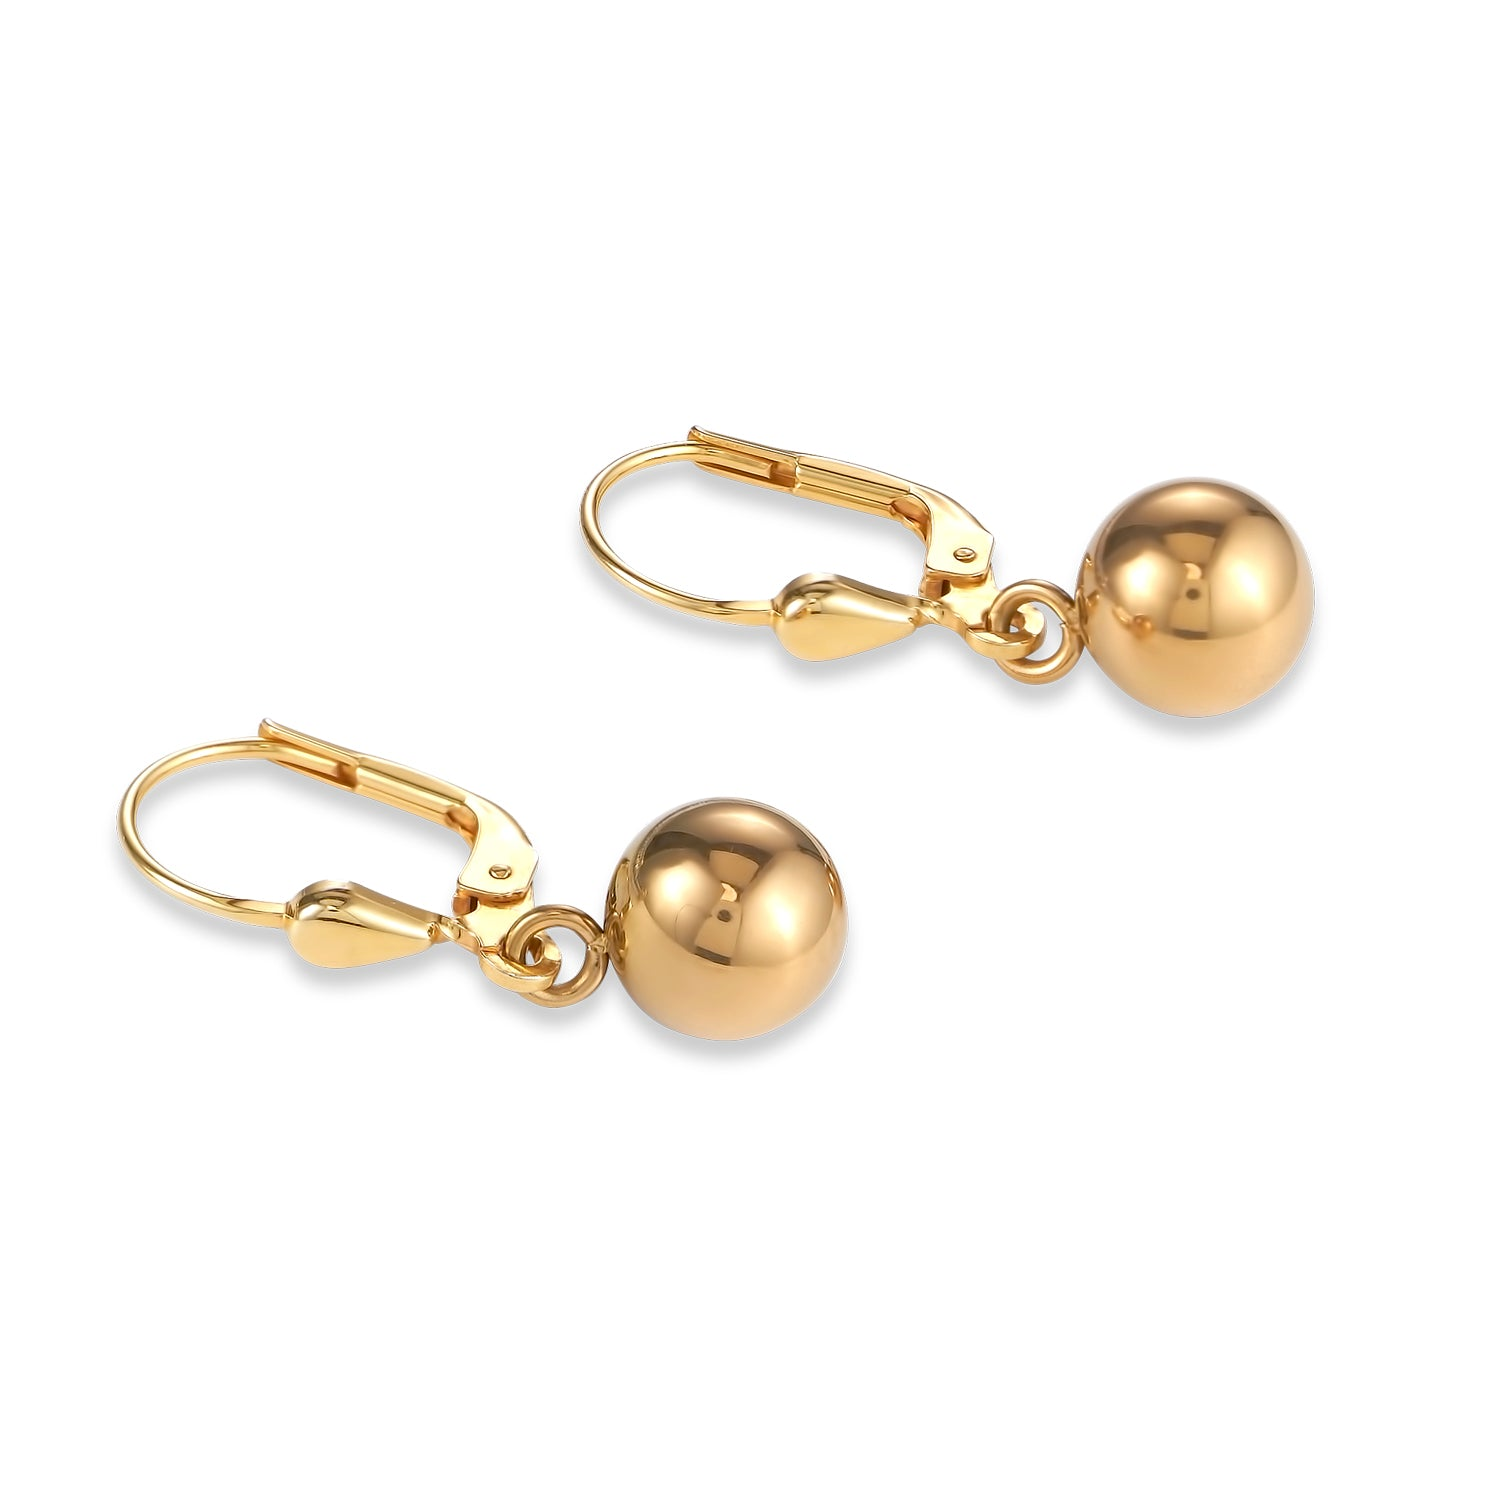 Coeur de Lion Earrings, gold